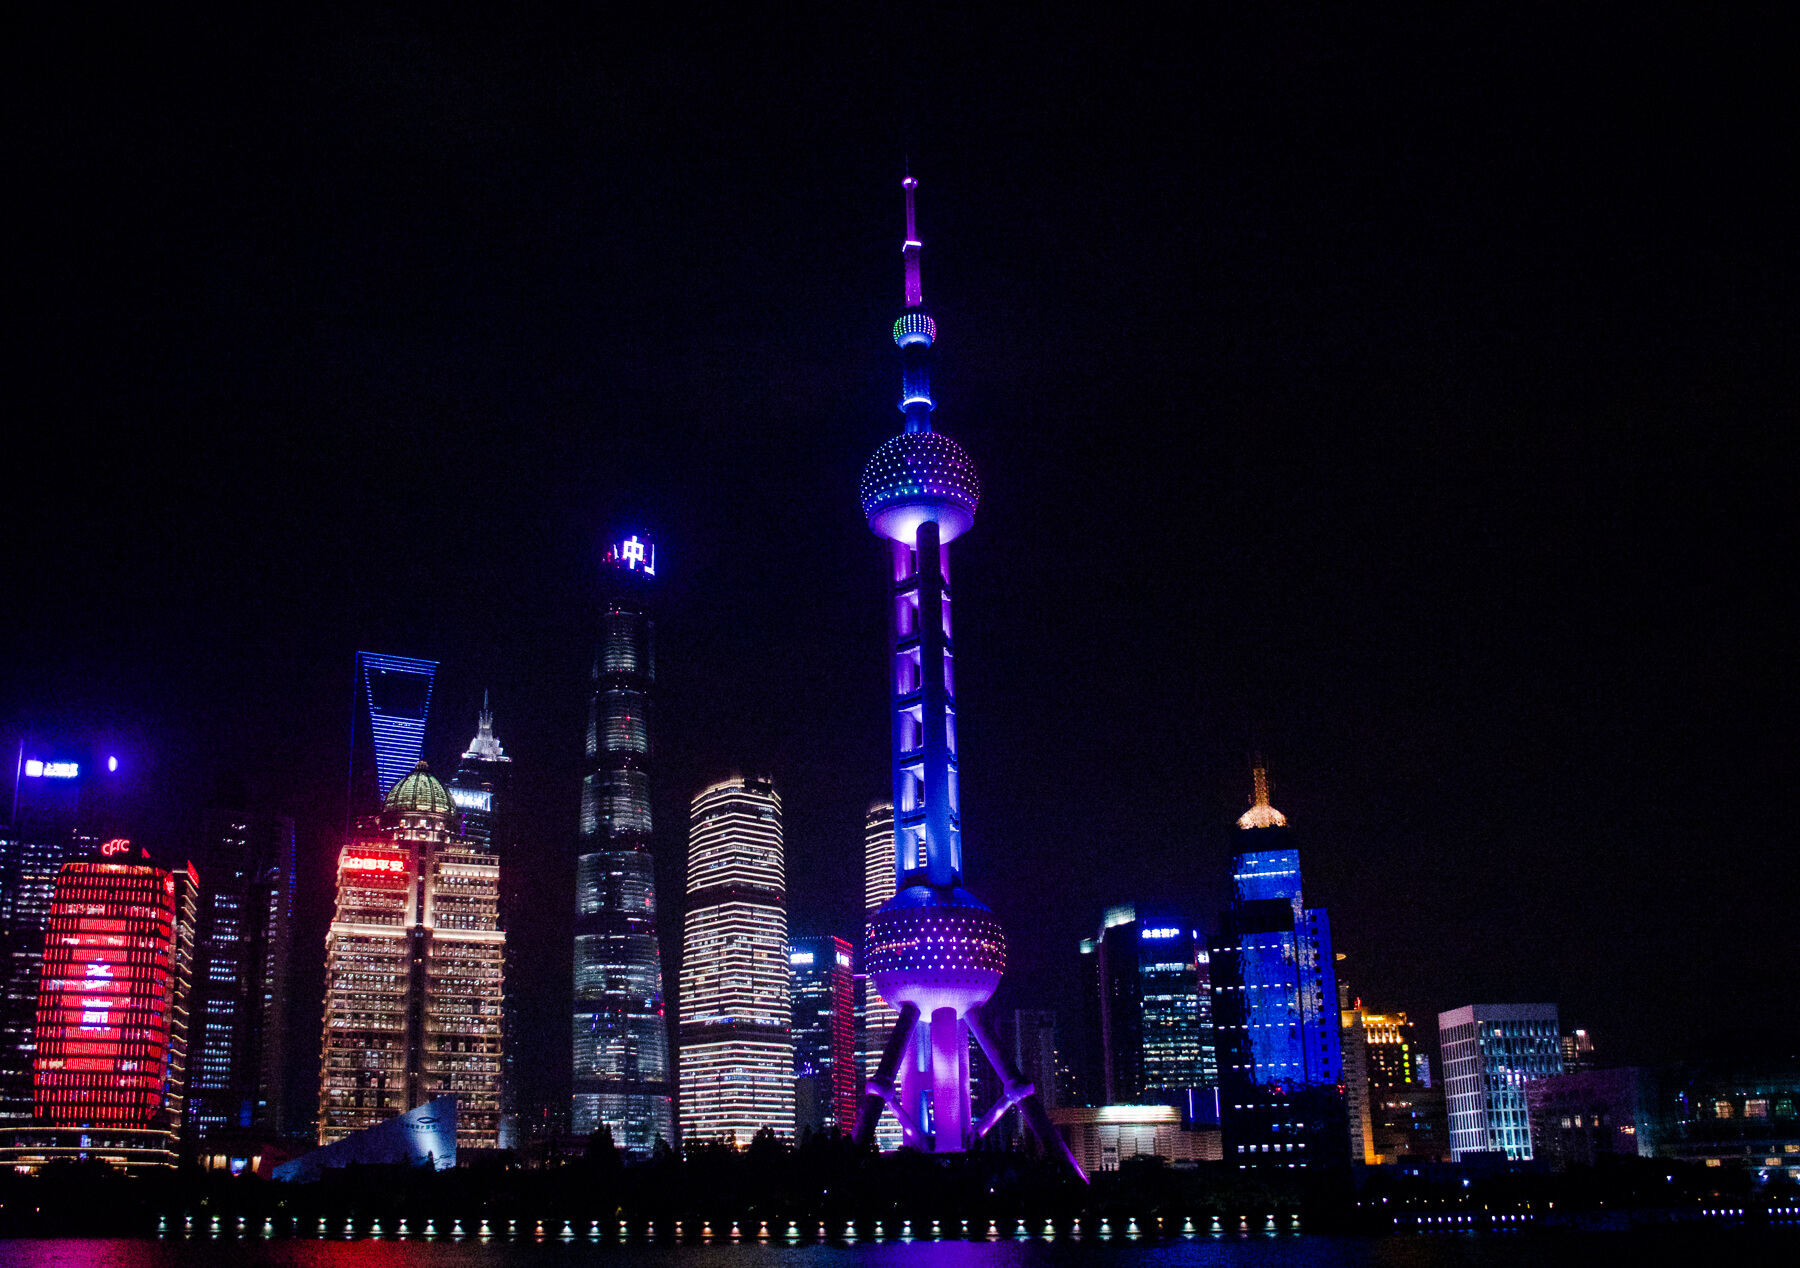 The high rise buildings in Shanghai at night time, all lit up in different colours